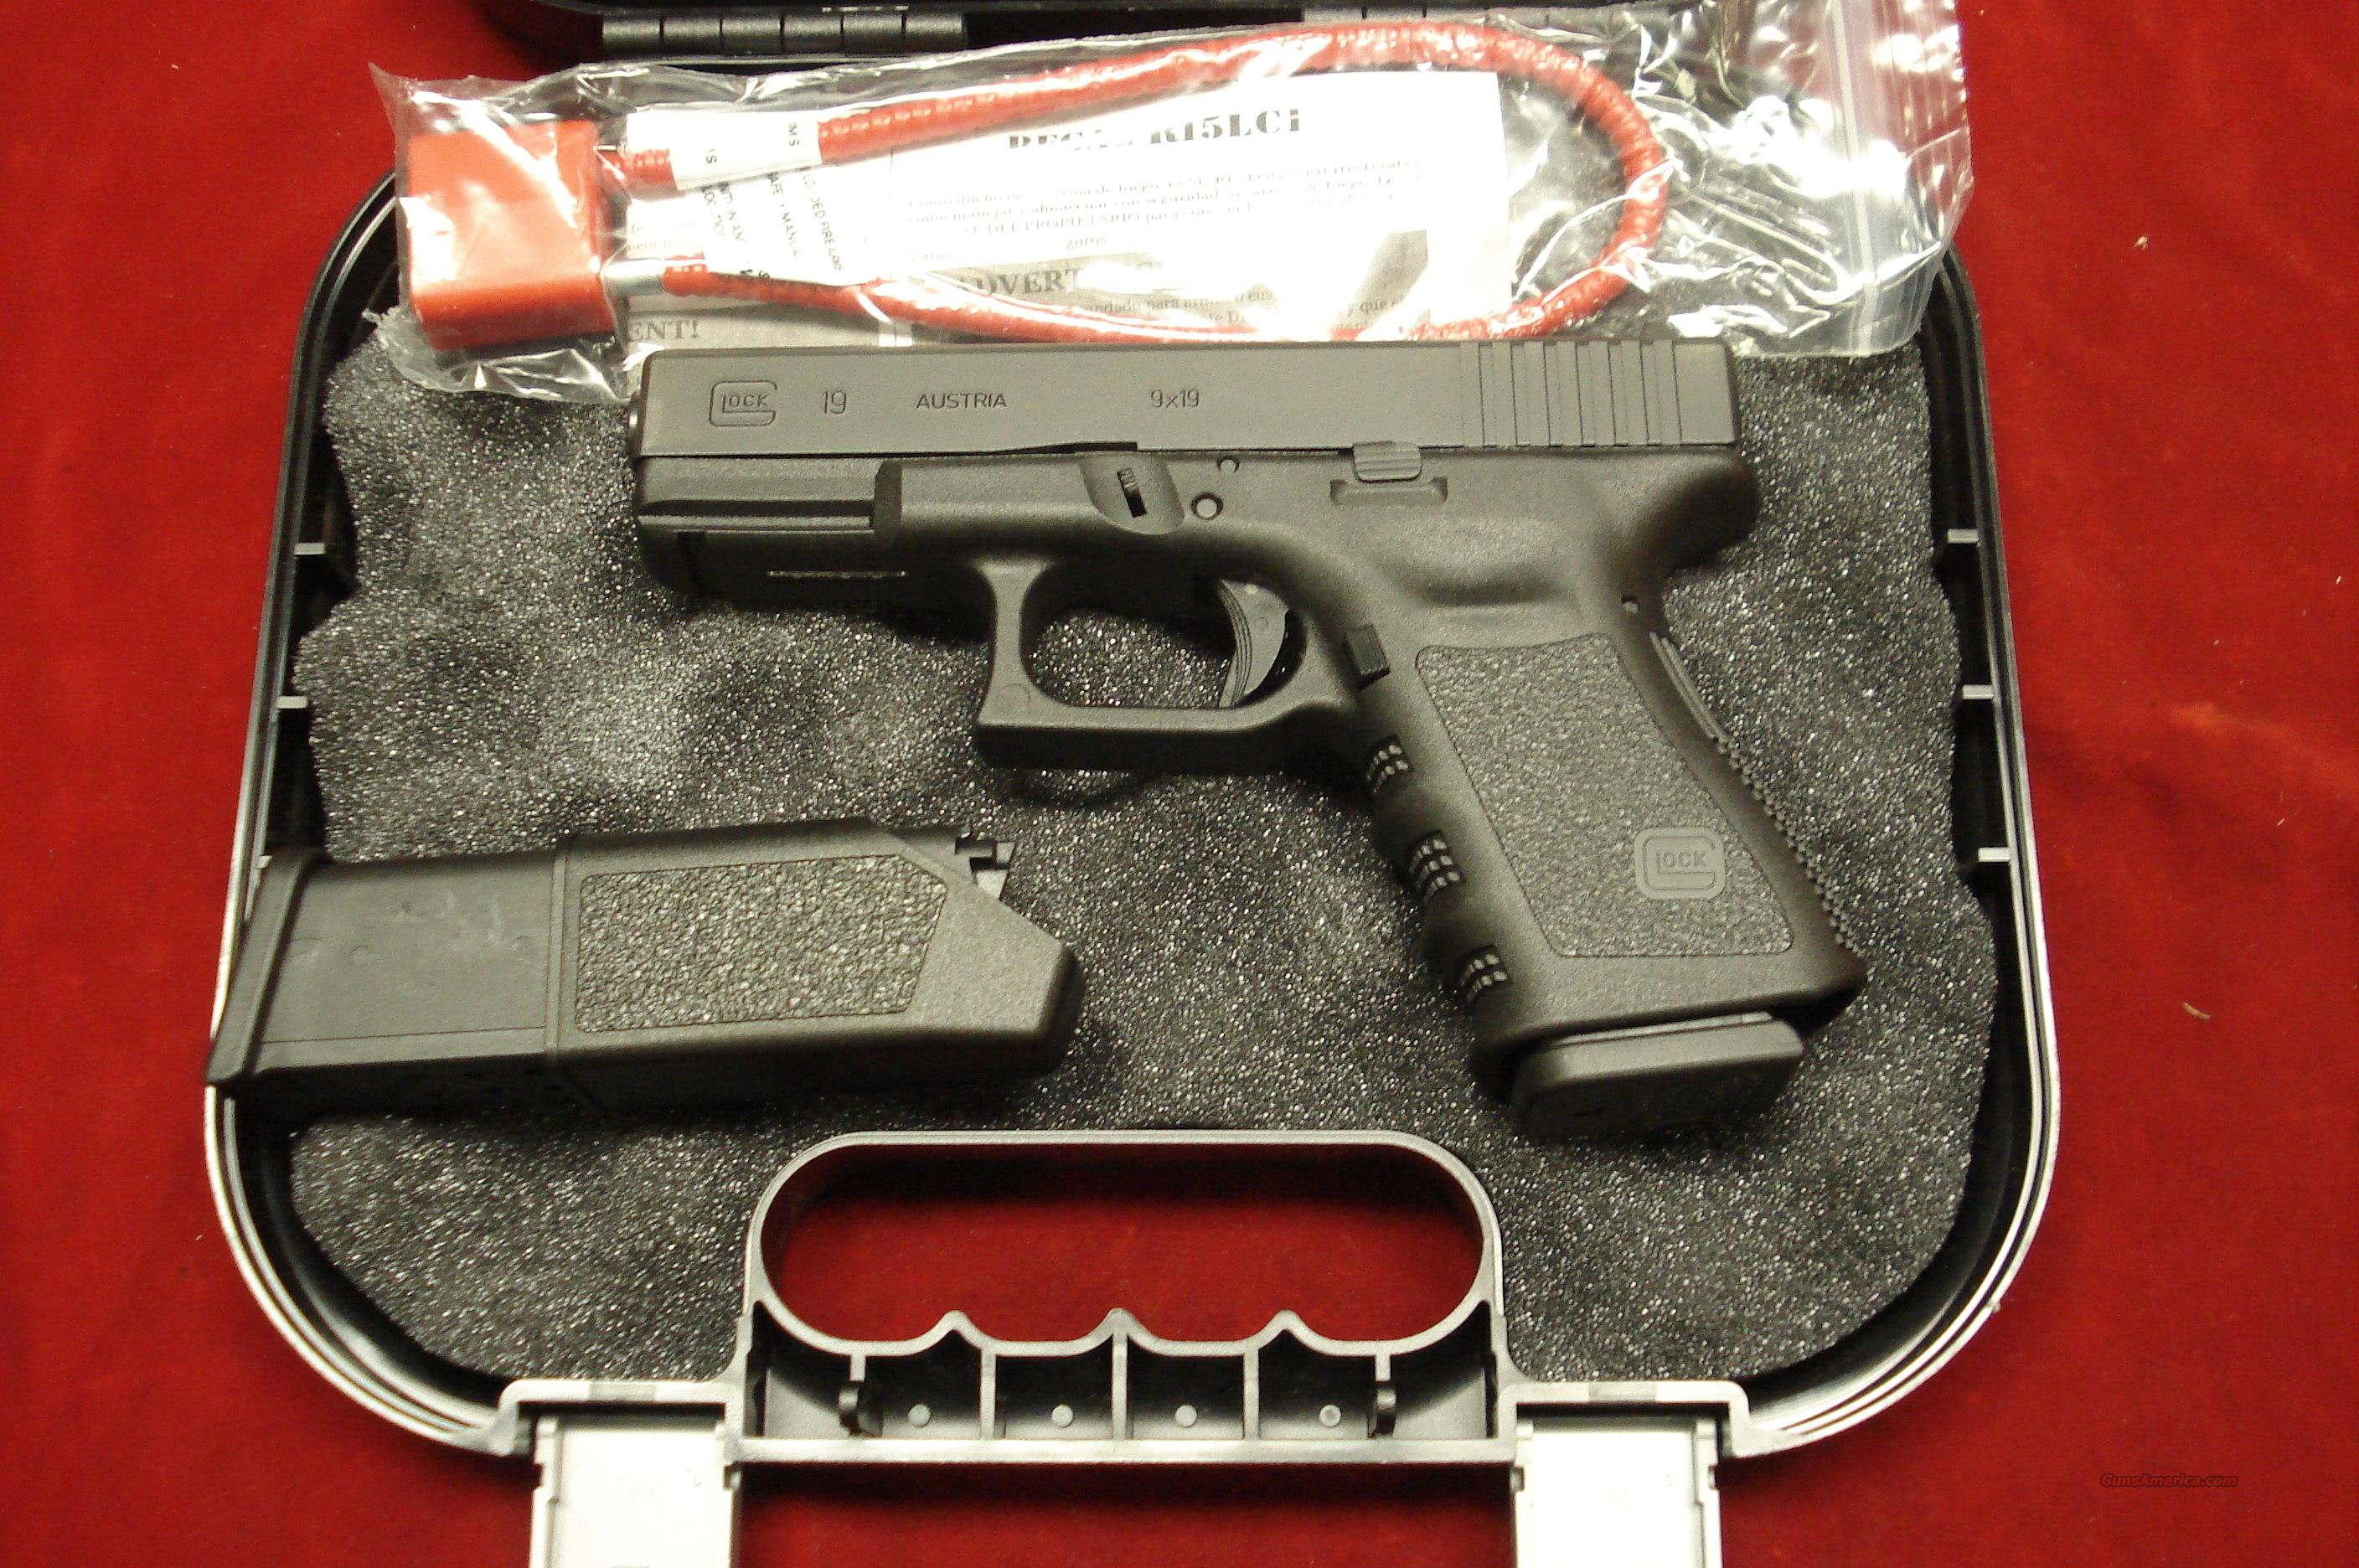 GLOCK MODEL 19 GEN 3 9MM W/HIGH CAPACITY MAGAZINES NEW  Guns > Pistols > Glock Pistols > 19